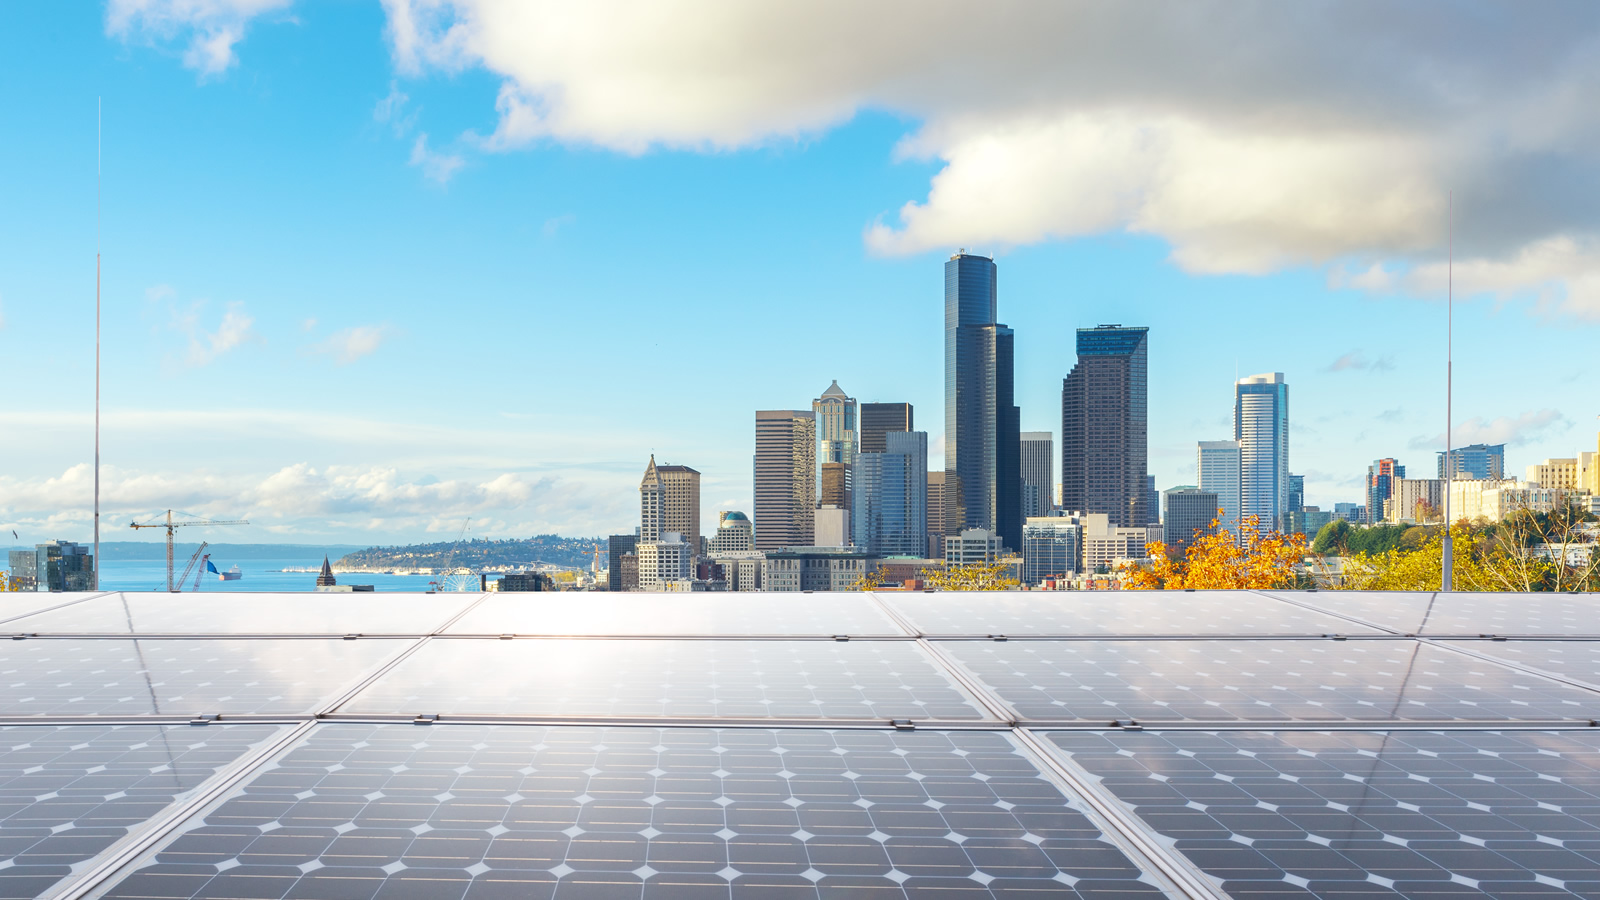 <h4>Cities Go Solar</h4><h5>Our Cities Go Solar campaign is urging 50 cities to think bigger, act smarter and tap the sun for more of their power. We are also bringing together over 300 mayors from all 50 states through our Mayors for Solar Energy project.</h5><em>zhu difeng via Shutterstock</em>